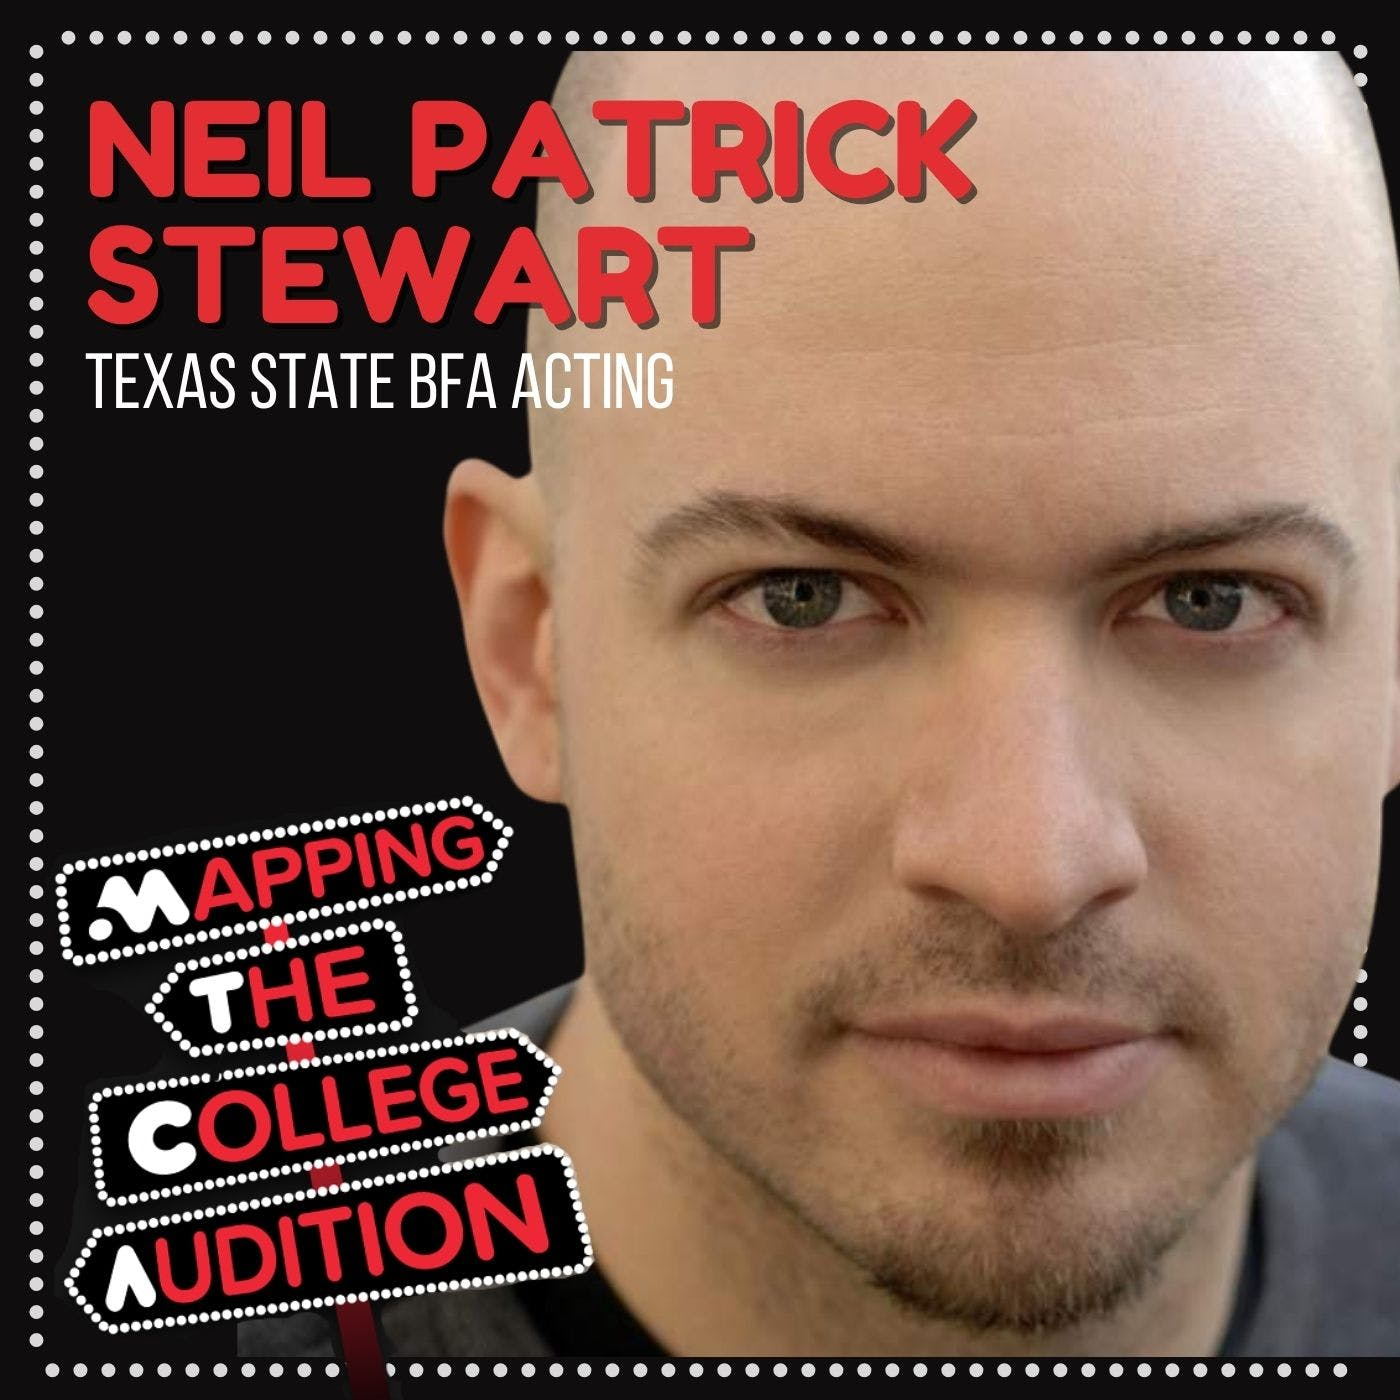 Ep 18. (CDD): Neil Patrick Stewart from Texas State BFA Acting on Unconventivity